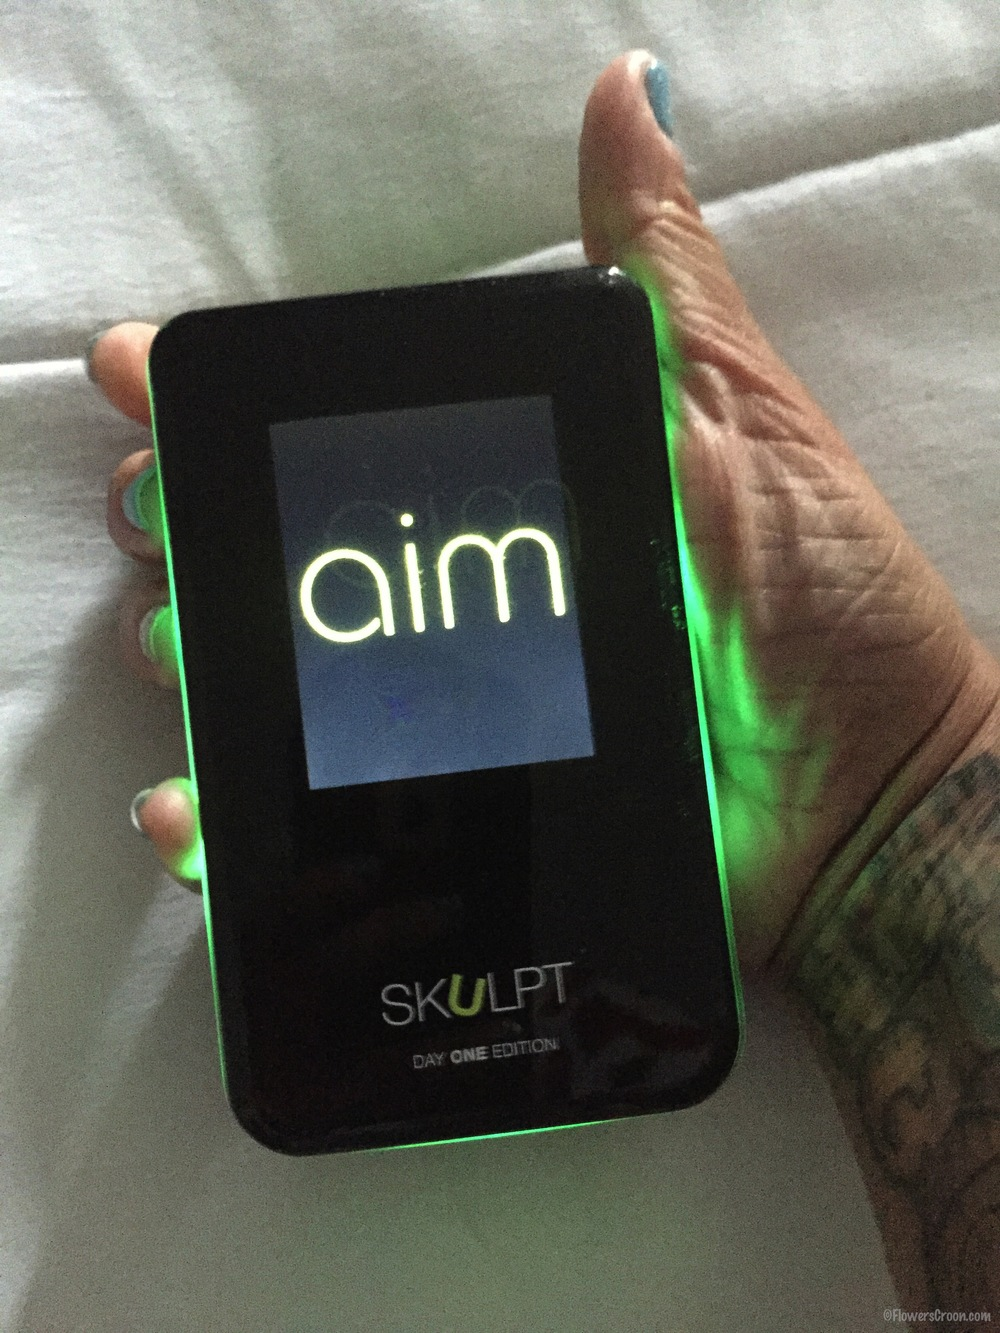 Skulpt Aim at start-up